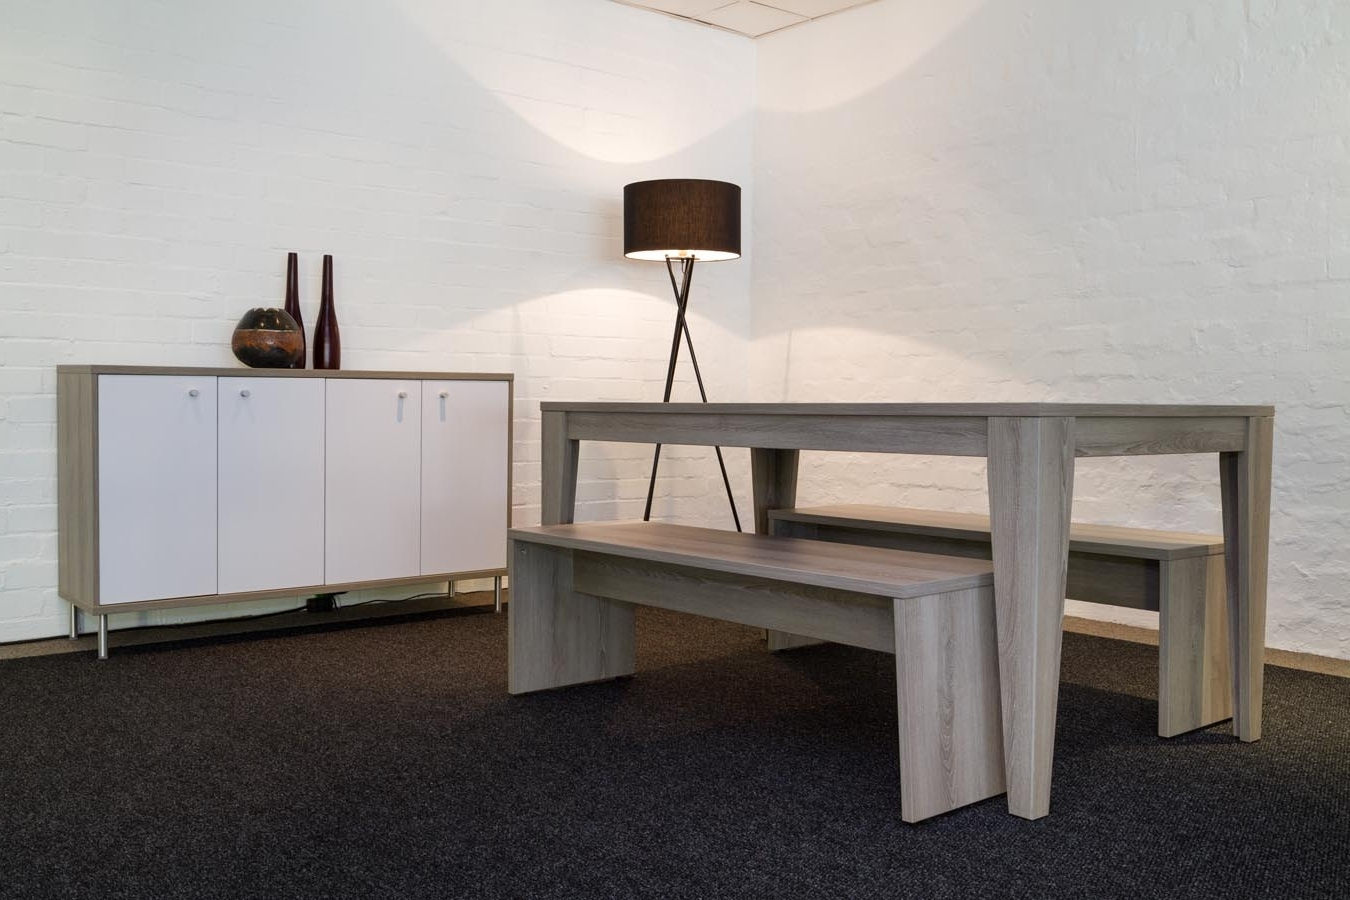 Metro Dining Table And Form Bench And Metro Server Unit – Bidoffice In Current Metro Dining Tables (View 12 of 25)